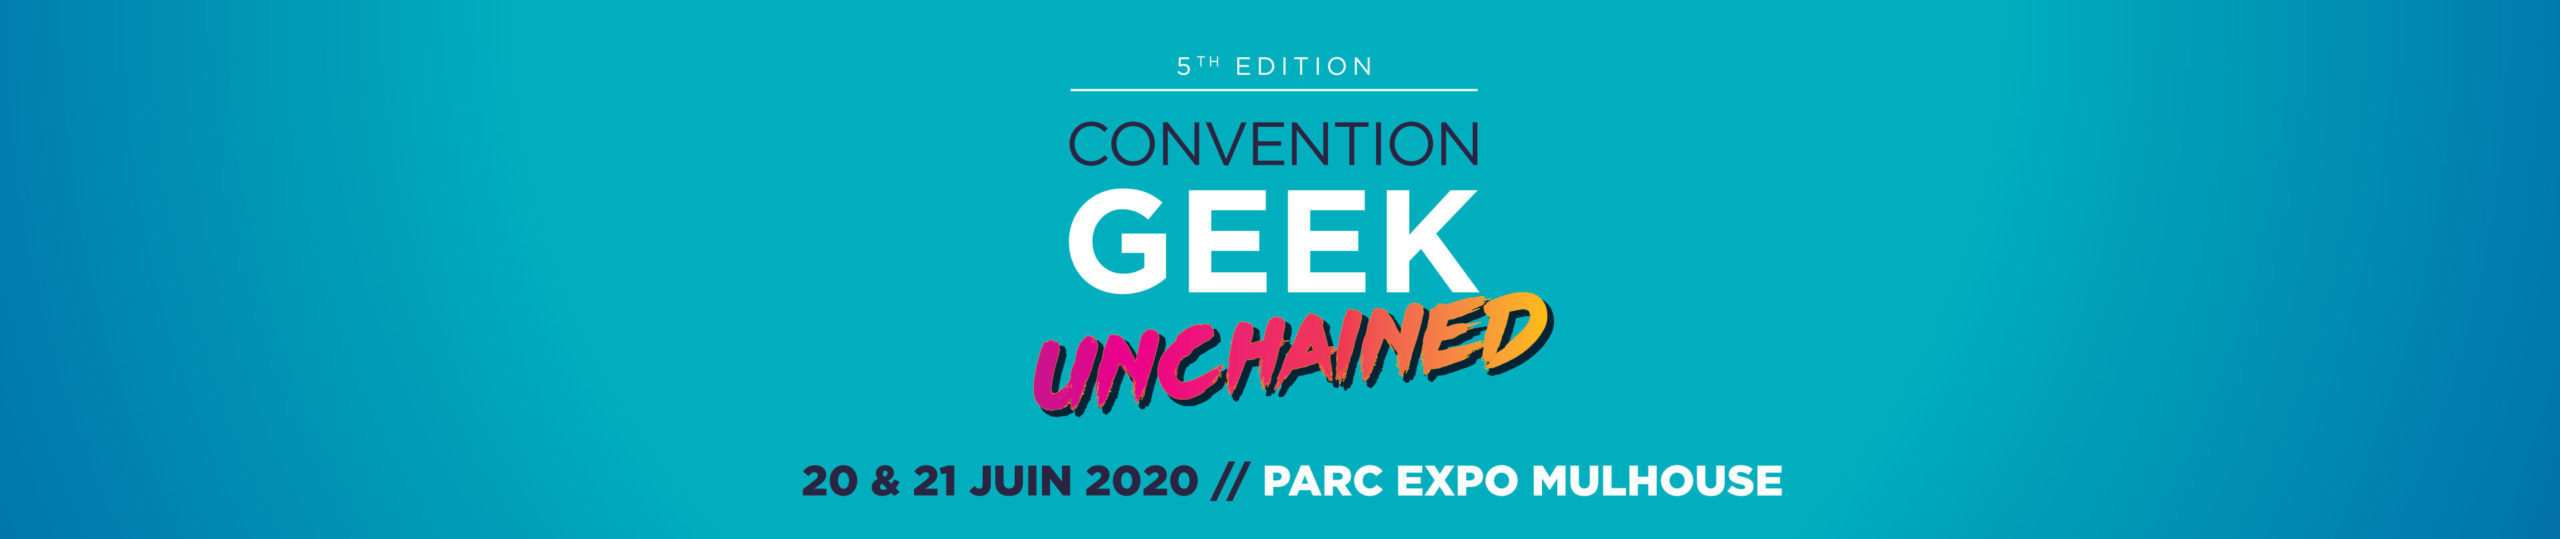 Convention Geek Unchained 5 - Parc Expo Mulhouse - June 20-21, 2020